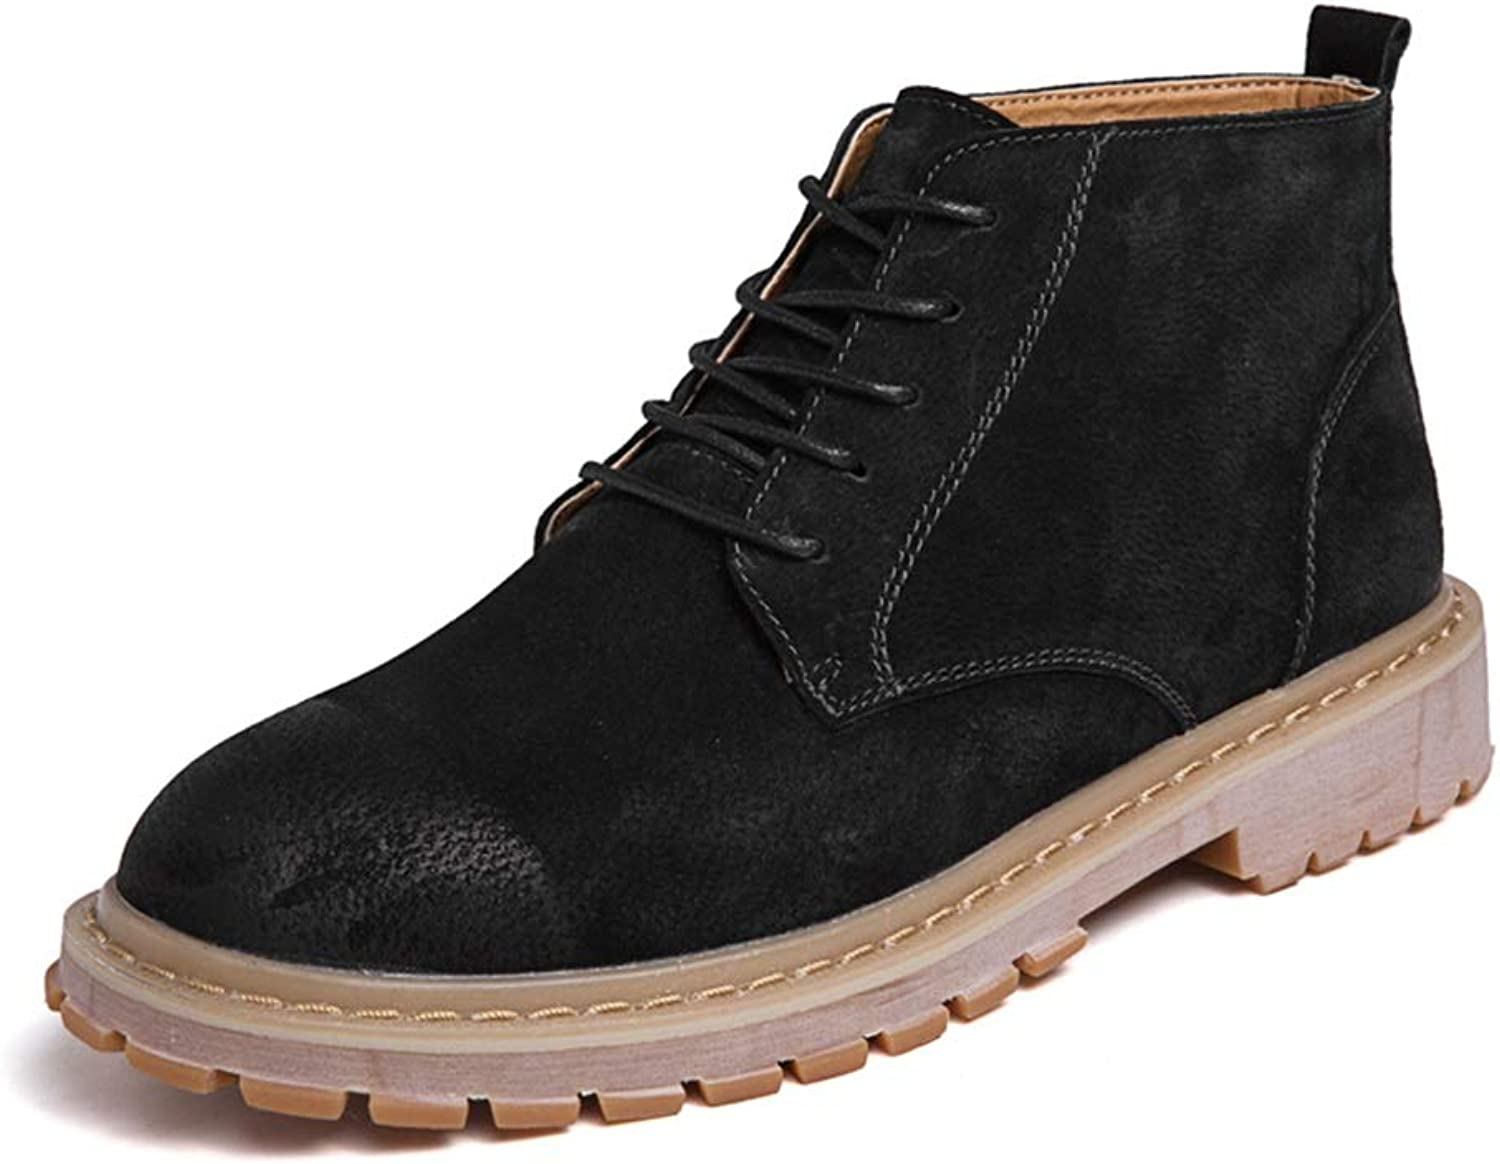 Xujw-shoes 2019 Mens Boots Men's Casual Simple and Comfortable Classic High Top Boot Fashion Retro Ankle Work Boot